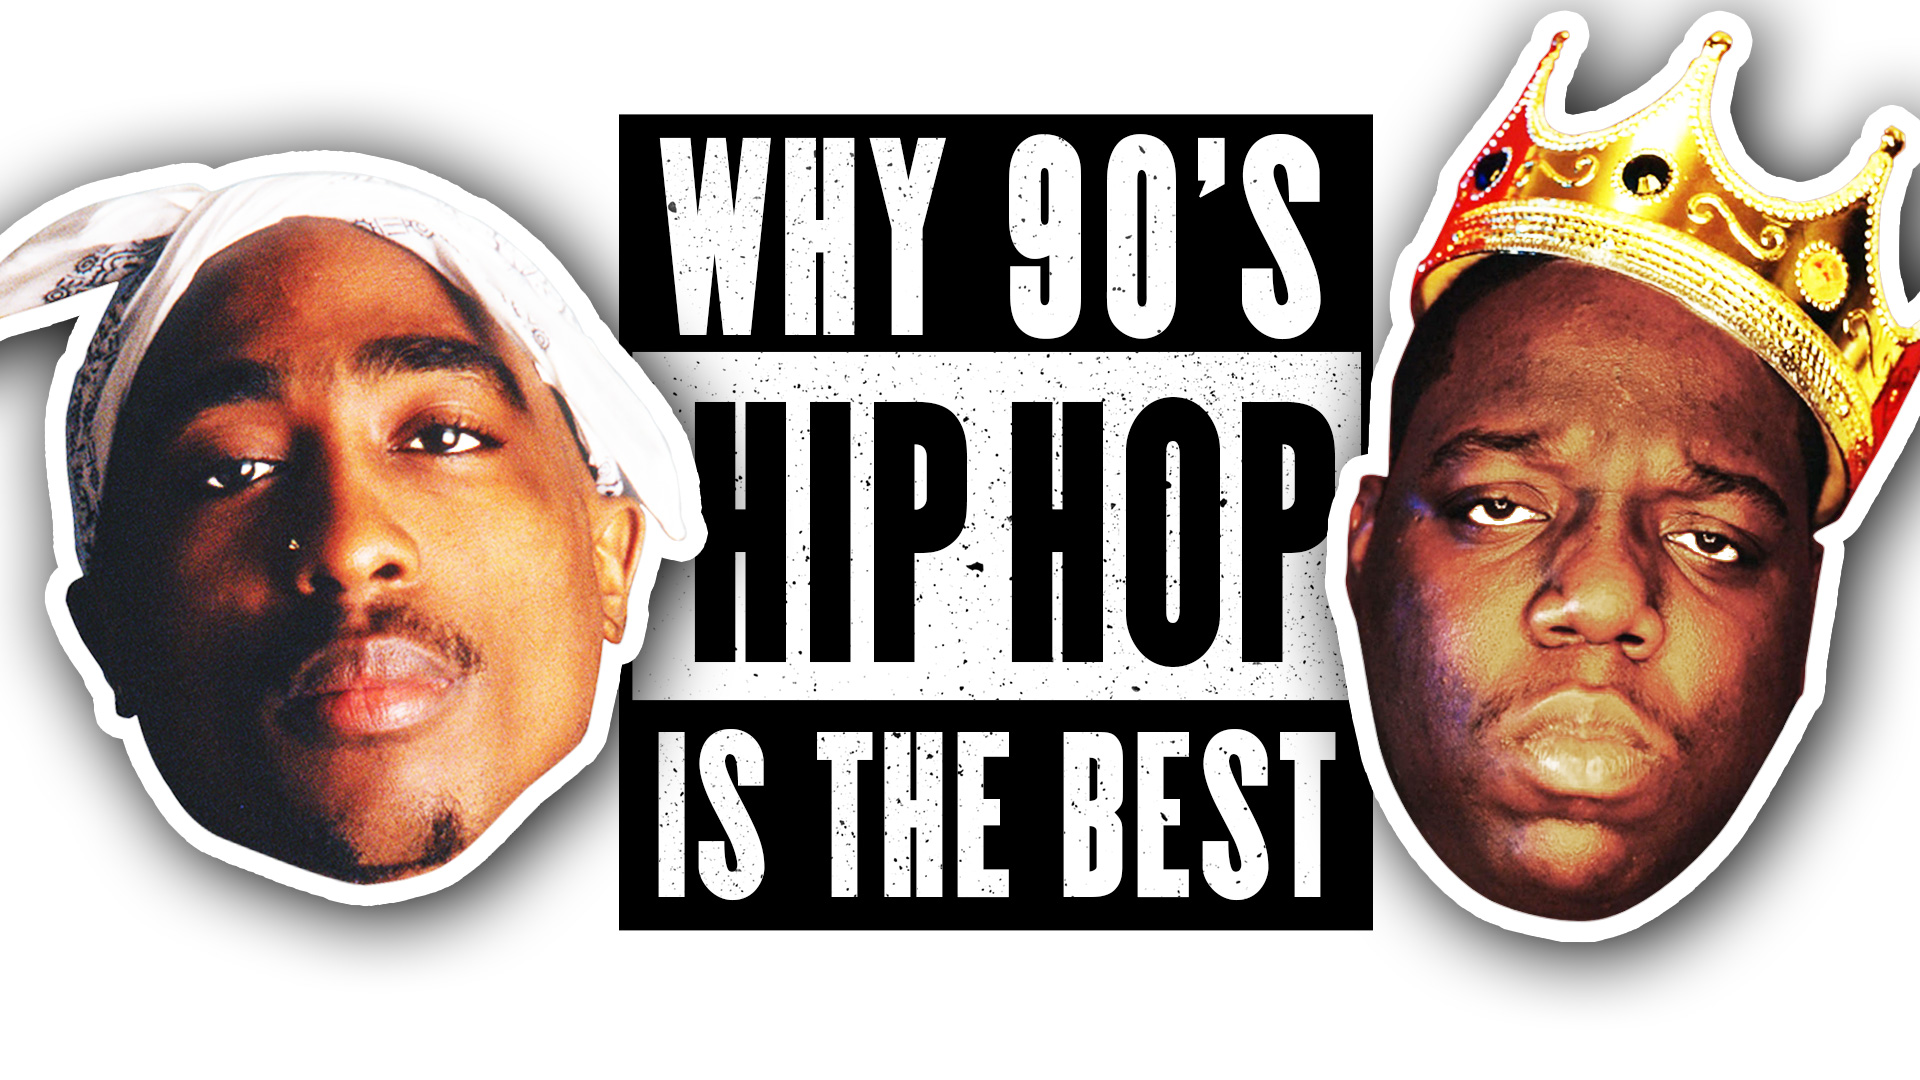 Top 10 Reasons Why 90s hip-hop is the best